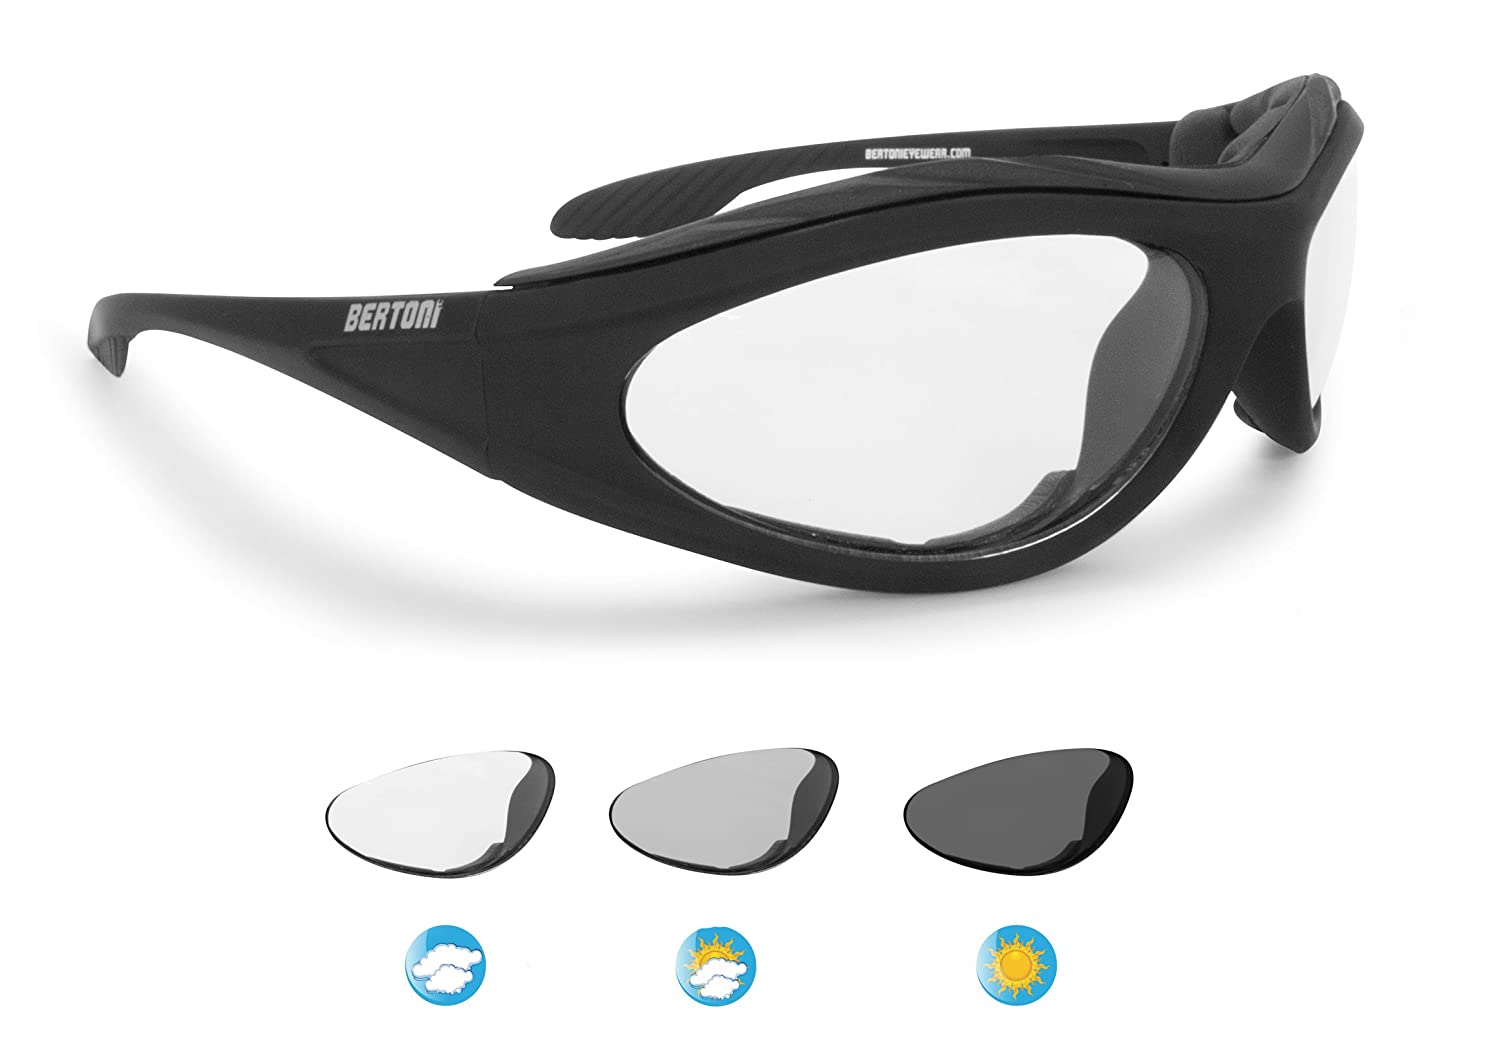 Photochromic Sport Sunglasses Wraparound Windproof Design - Antifog Anticrash Lens - Windproof insert - by Bertoni F125A1 Motorcycle Padded Glasses Bertoni iwear Italy